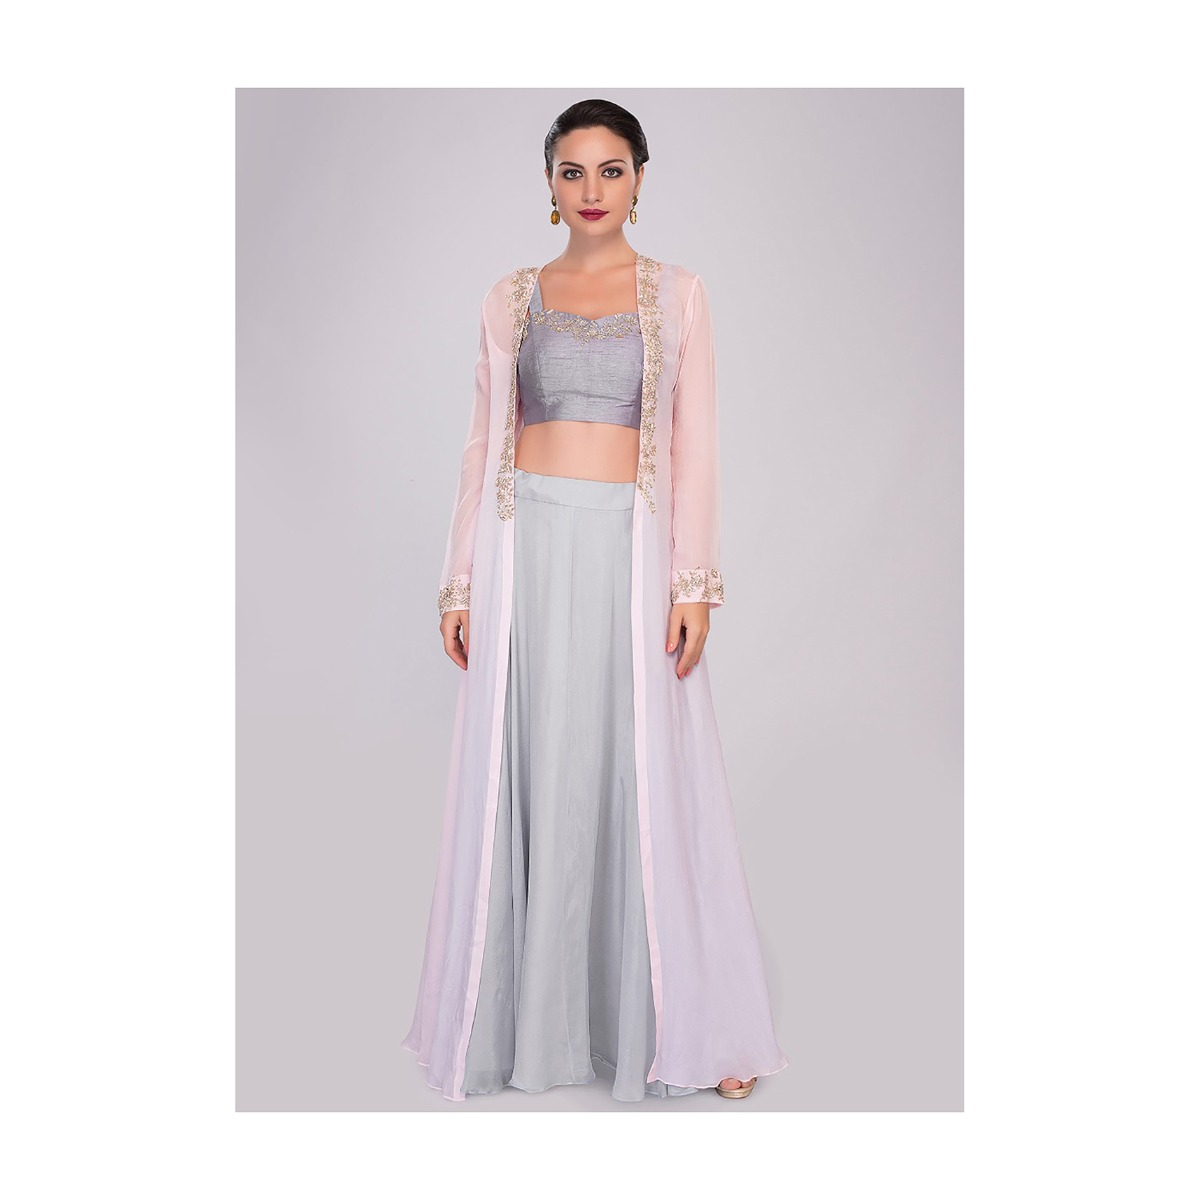 68283fcdcc2551 Flint grey crop top and skirt paired with baby pink jacket with embroidered  edges only on KalkiMore Detail